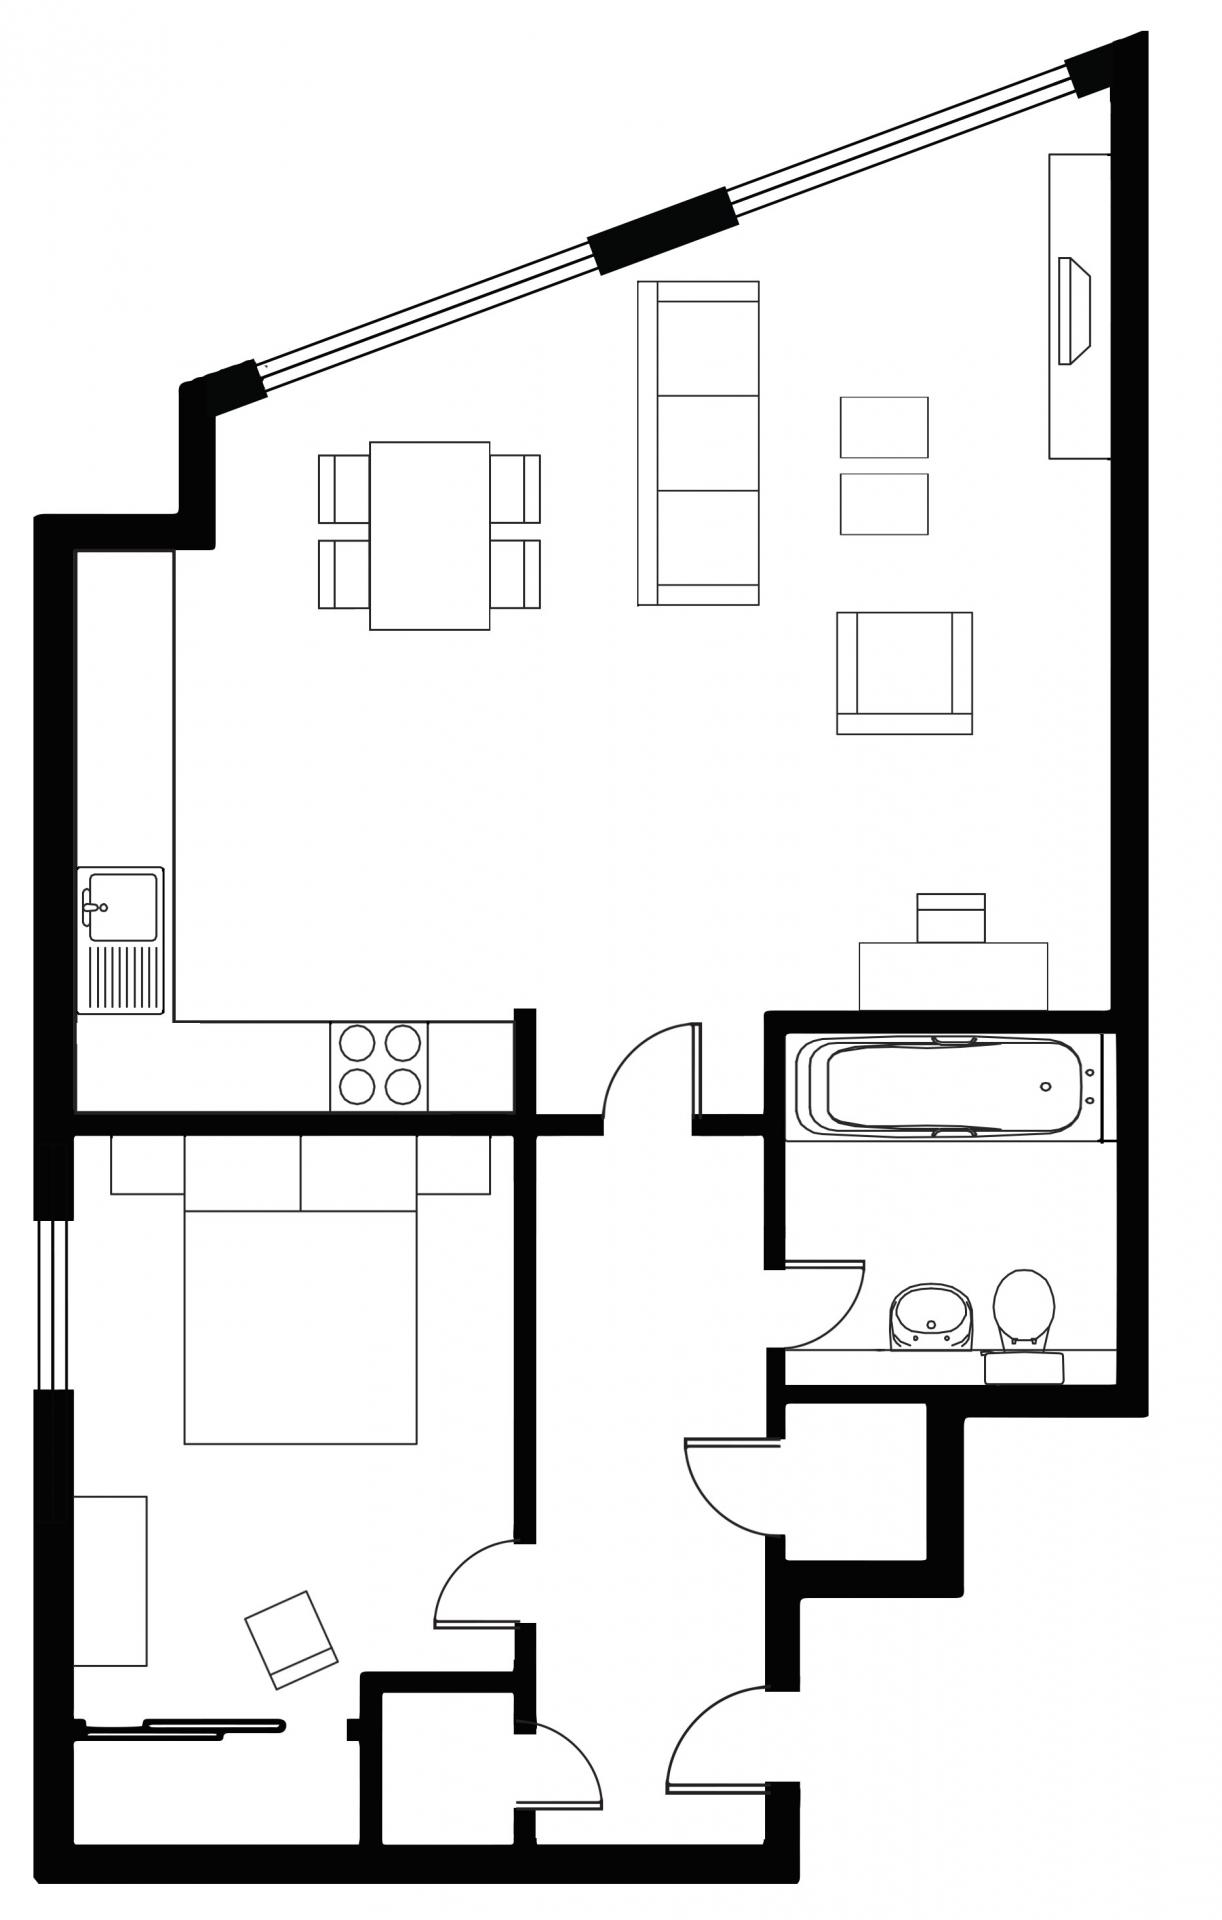 Floor plan 3 at Tolbooth Apartments